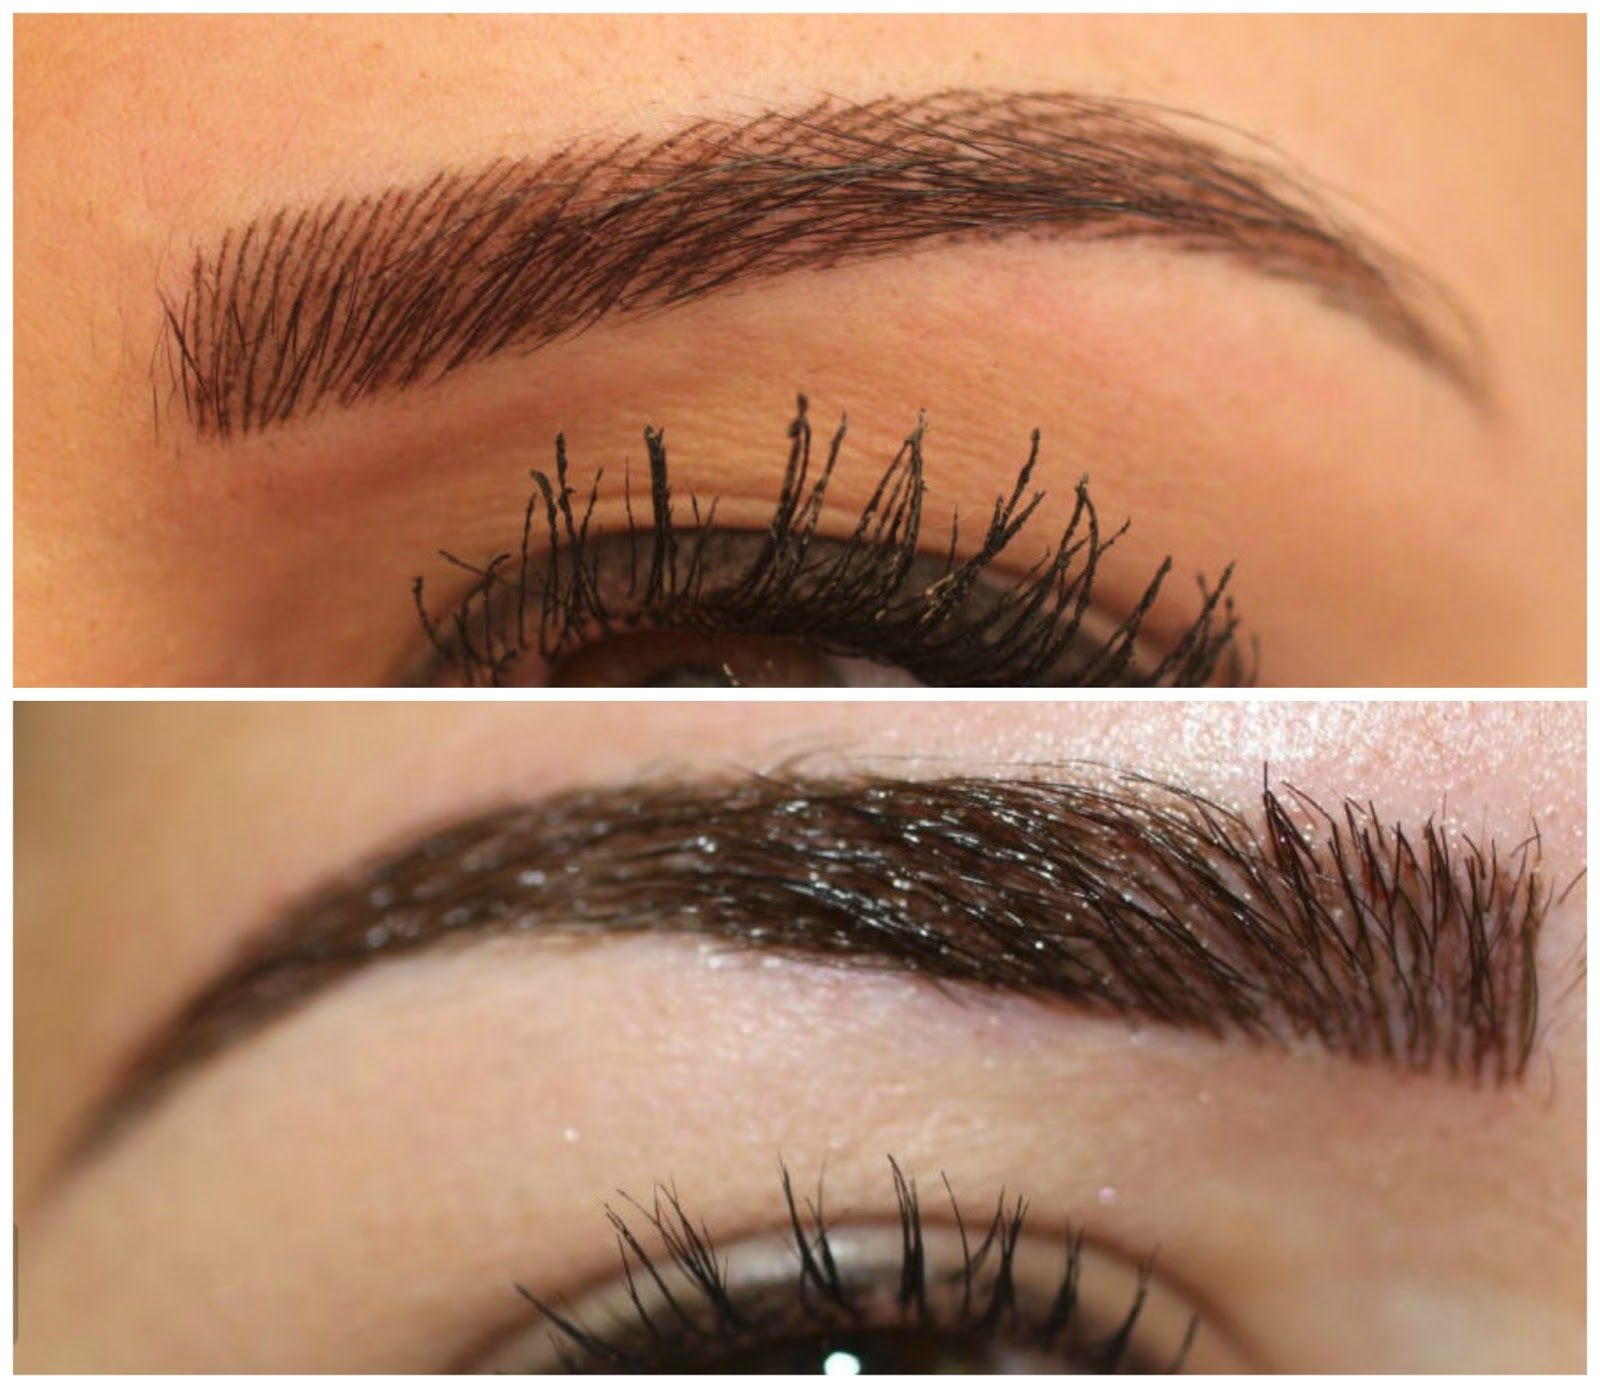 Tattooed Eyebrows These Are Done Nicely Things I Love